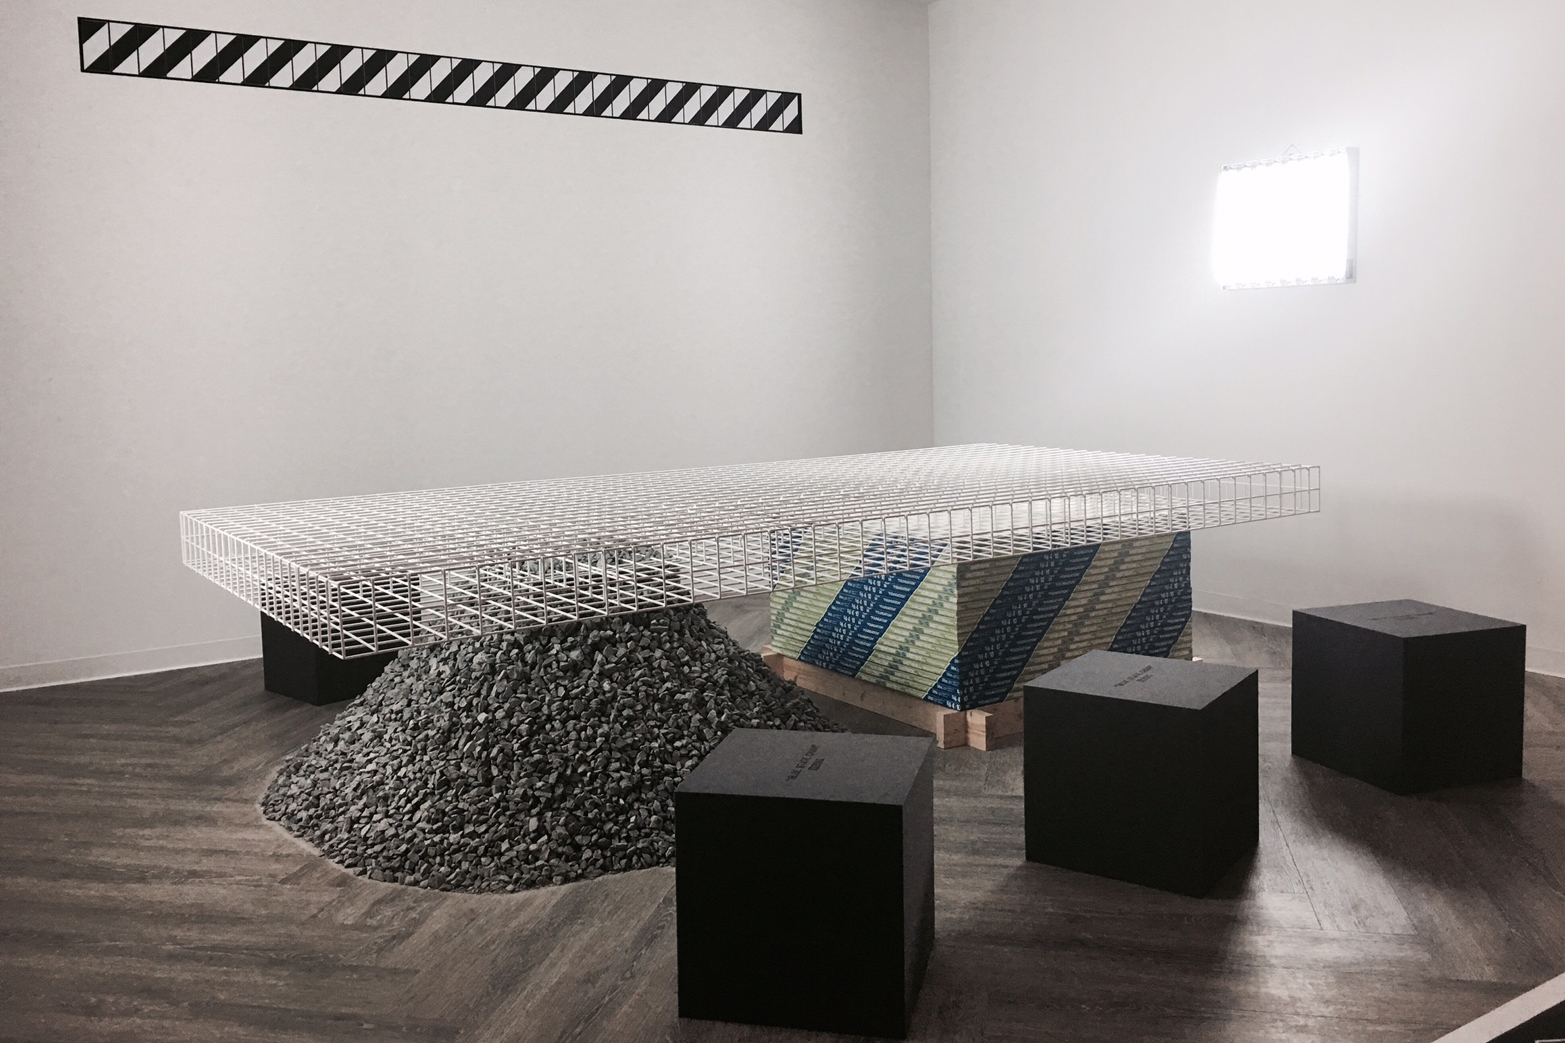 sofa cleaning miami beach large leather sectional virgil abloh to unveil furniture at art basel